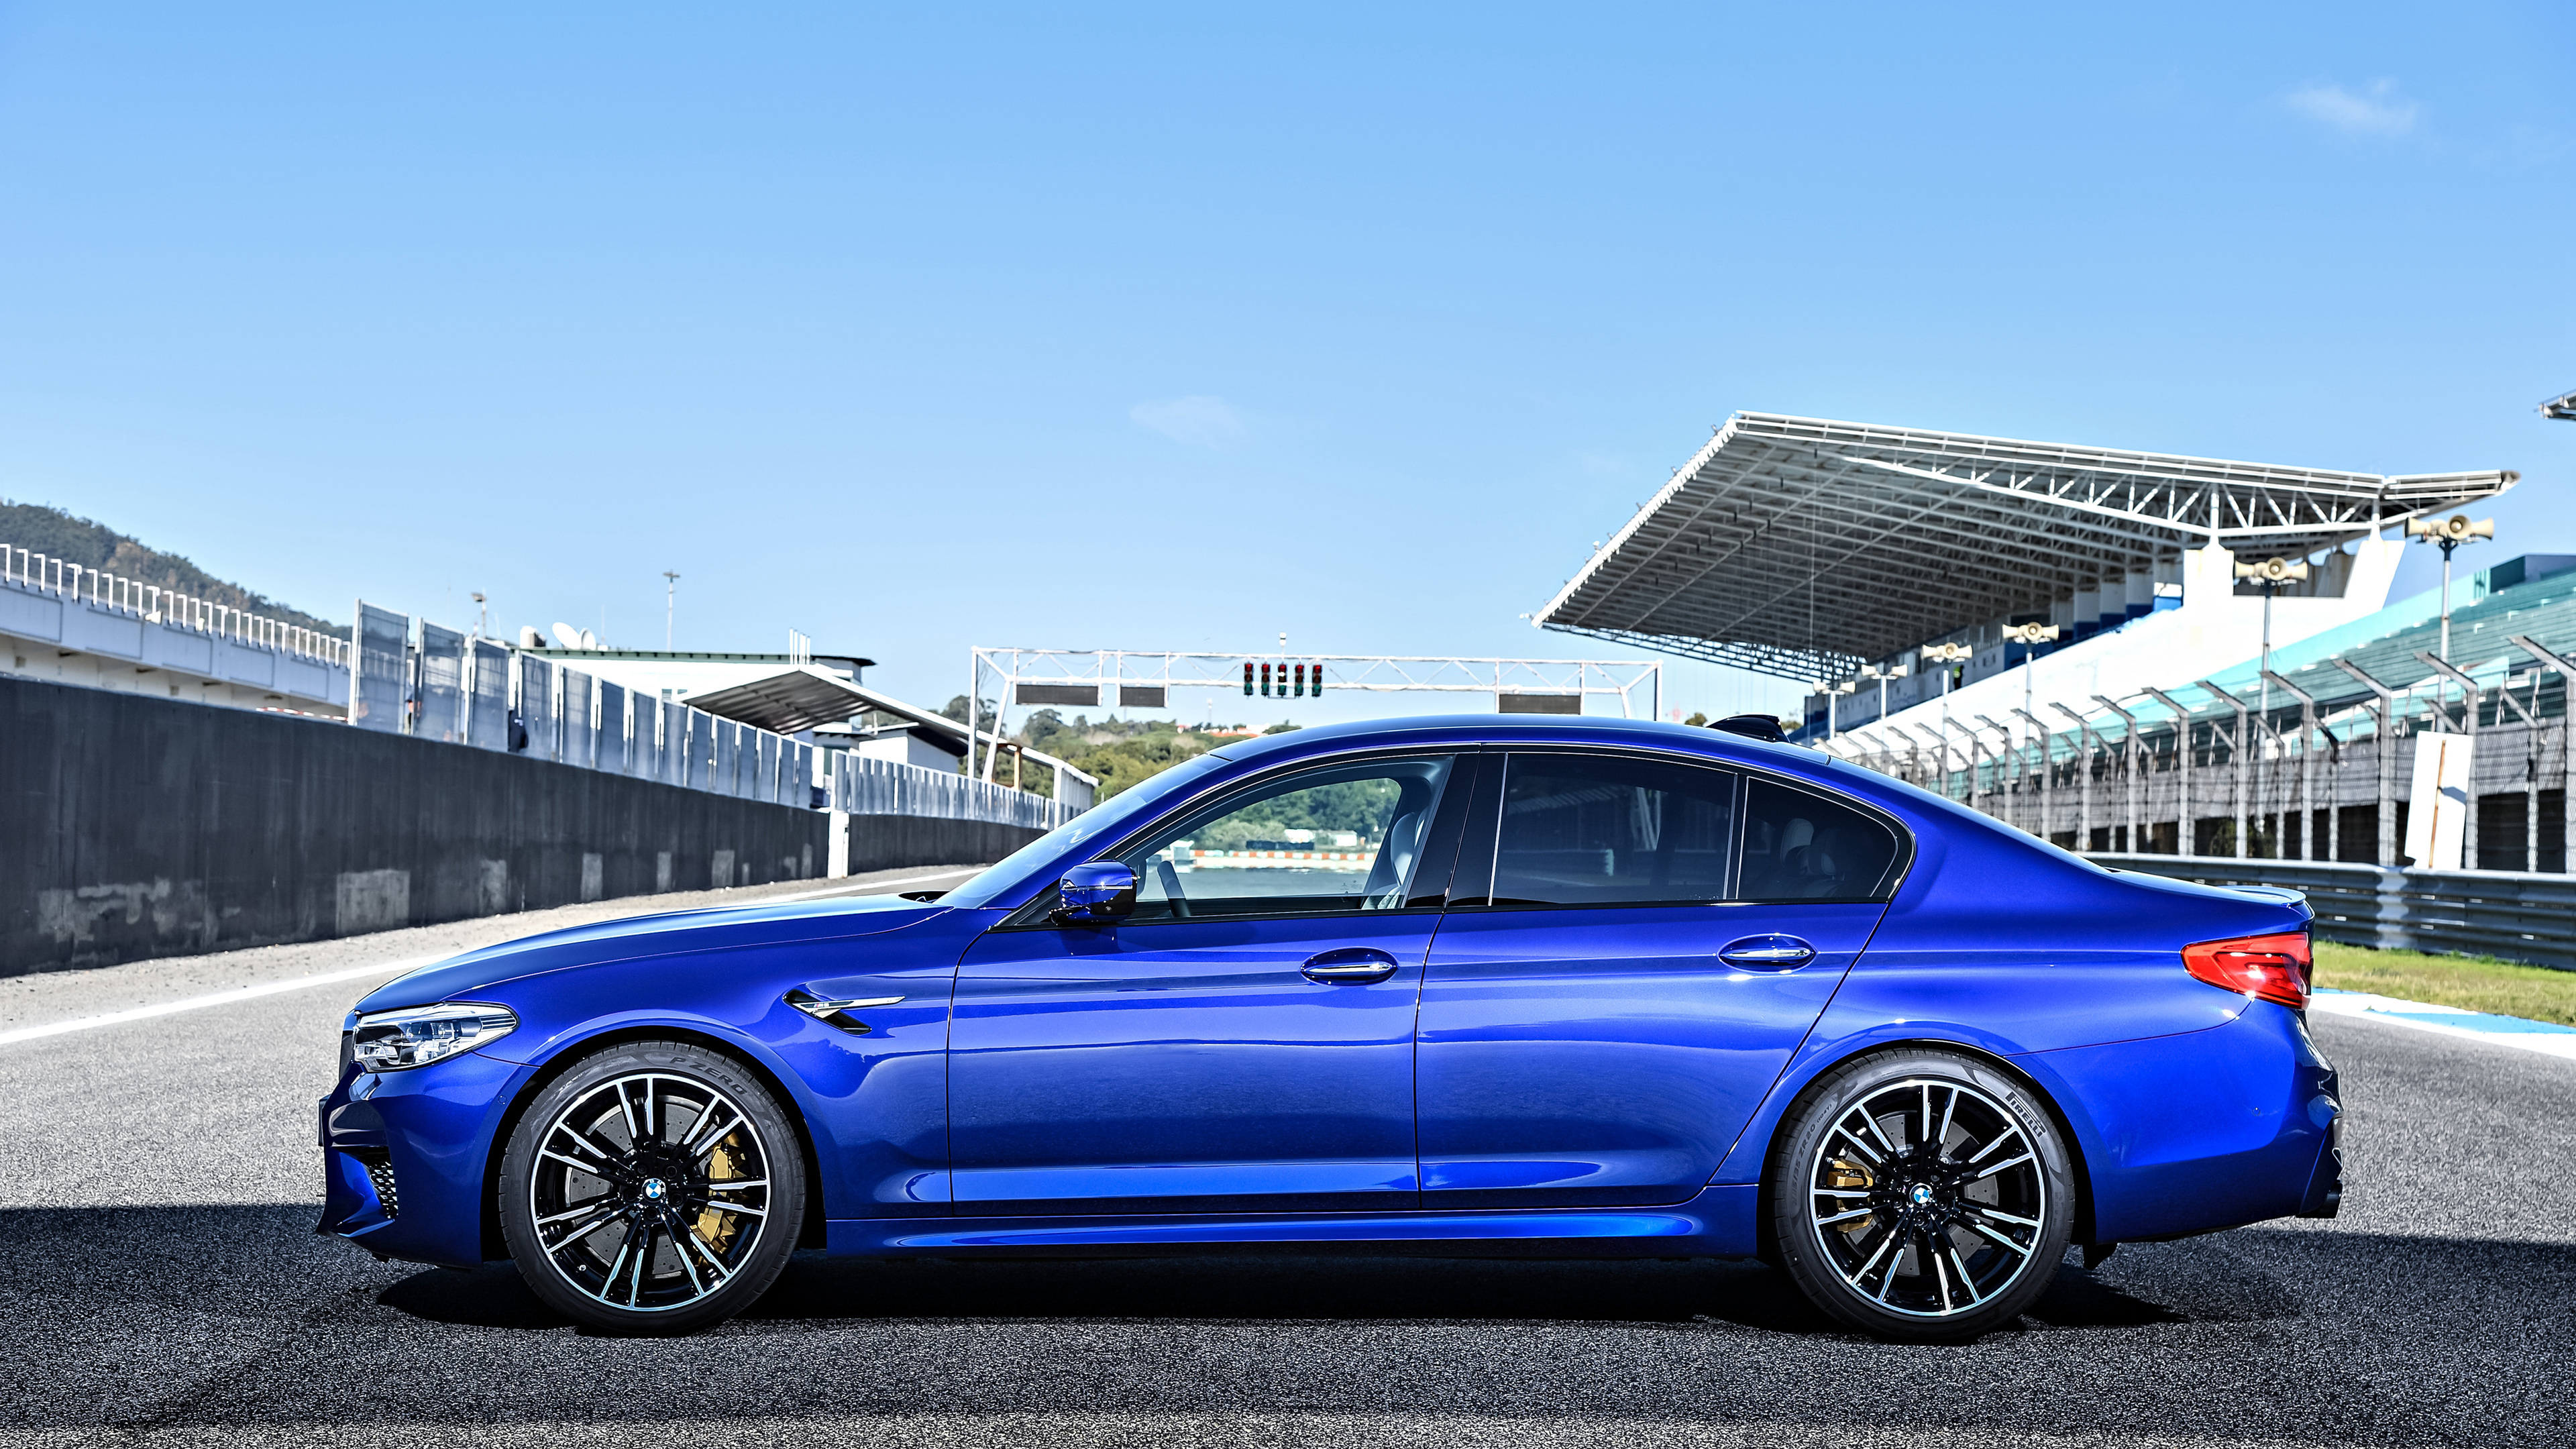 bmw m5 2018 1539108519 - Bmw M5 2018 - hd-wallpapers, cars wallpapers, bmw wallpapers, bmw m5 wallpapers, 4k-wallpapers, 2018 cars wallpapers